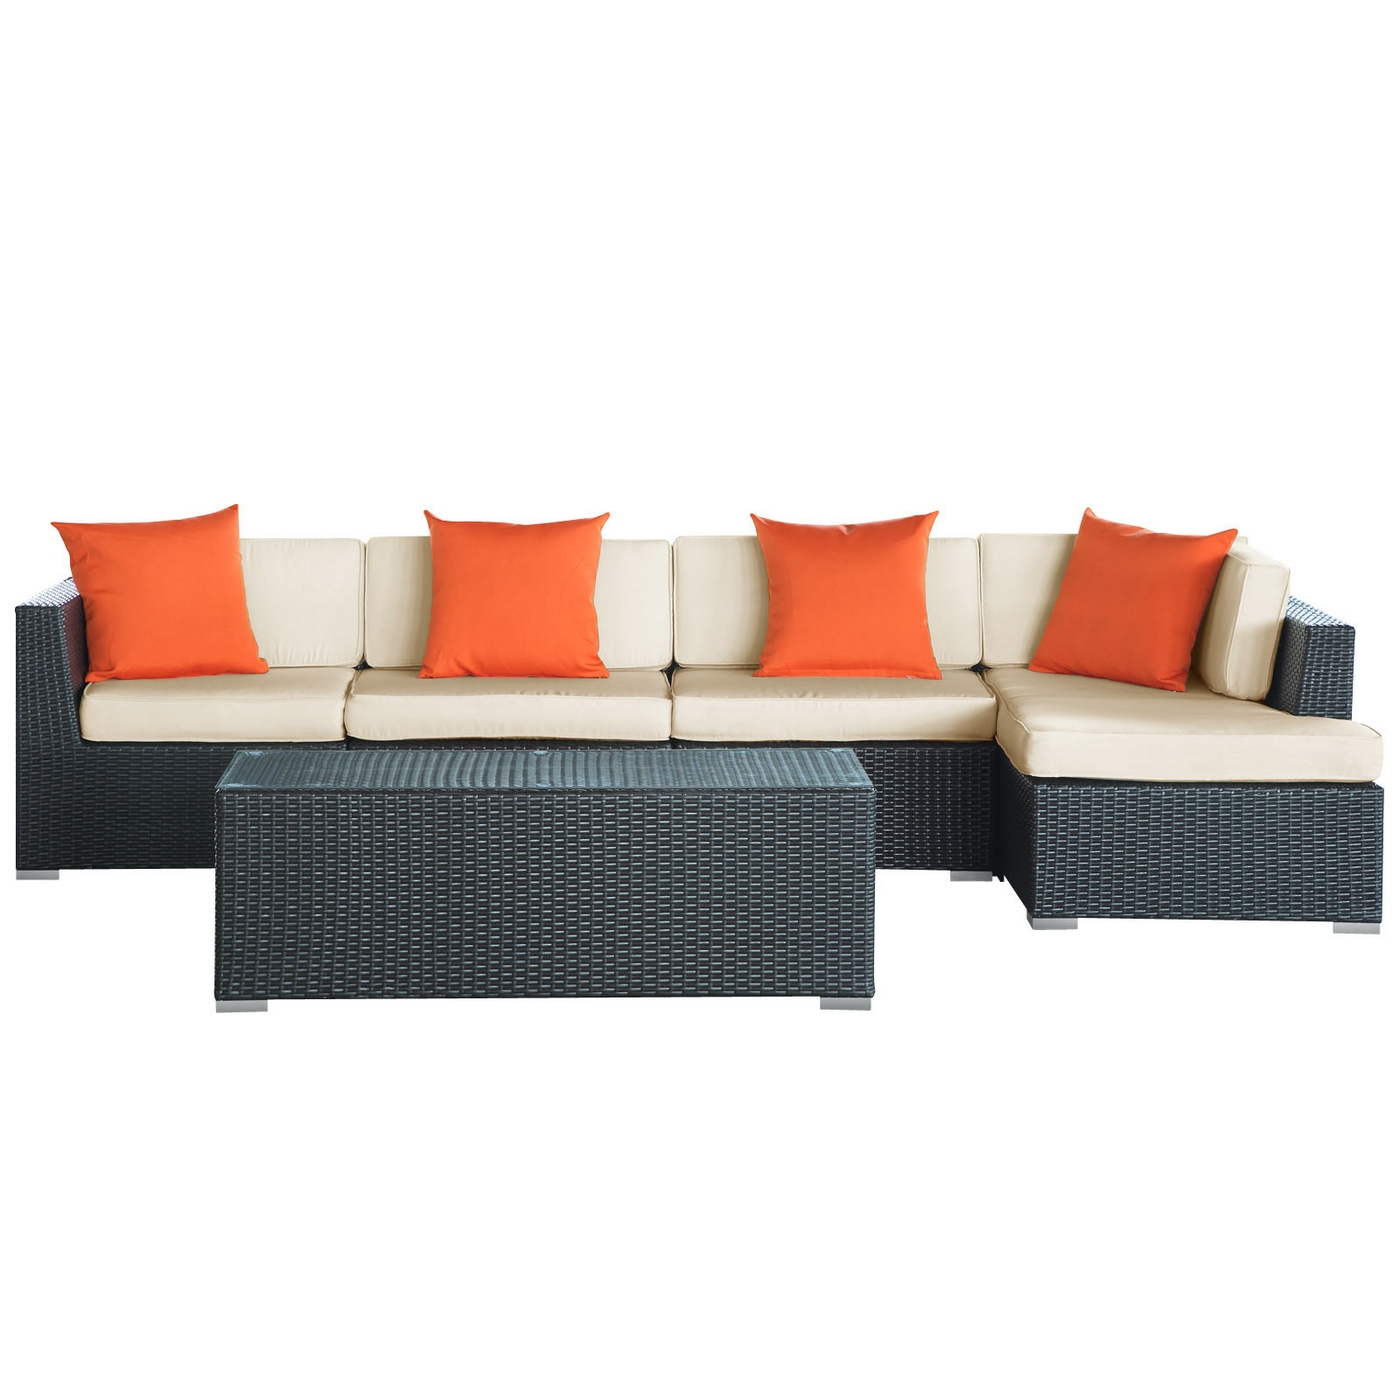 5 piece signal modern patio sectional sofa set with uv for 5 piece fabric sectional sofa